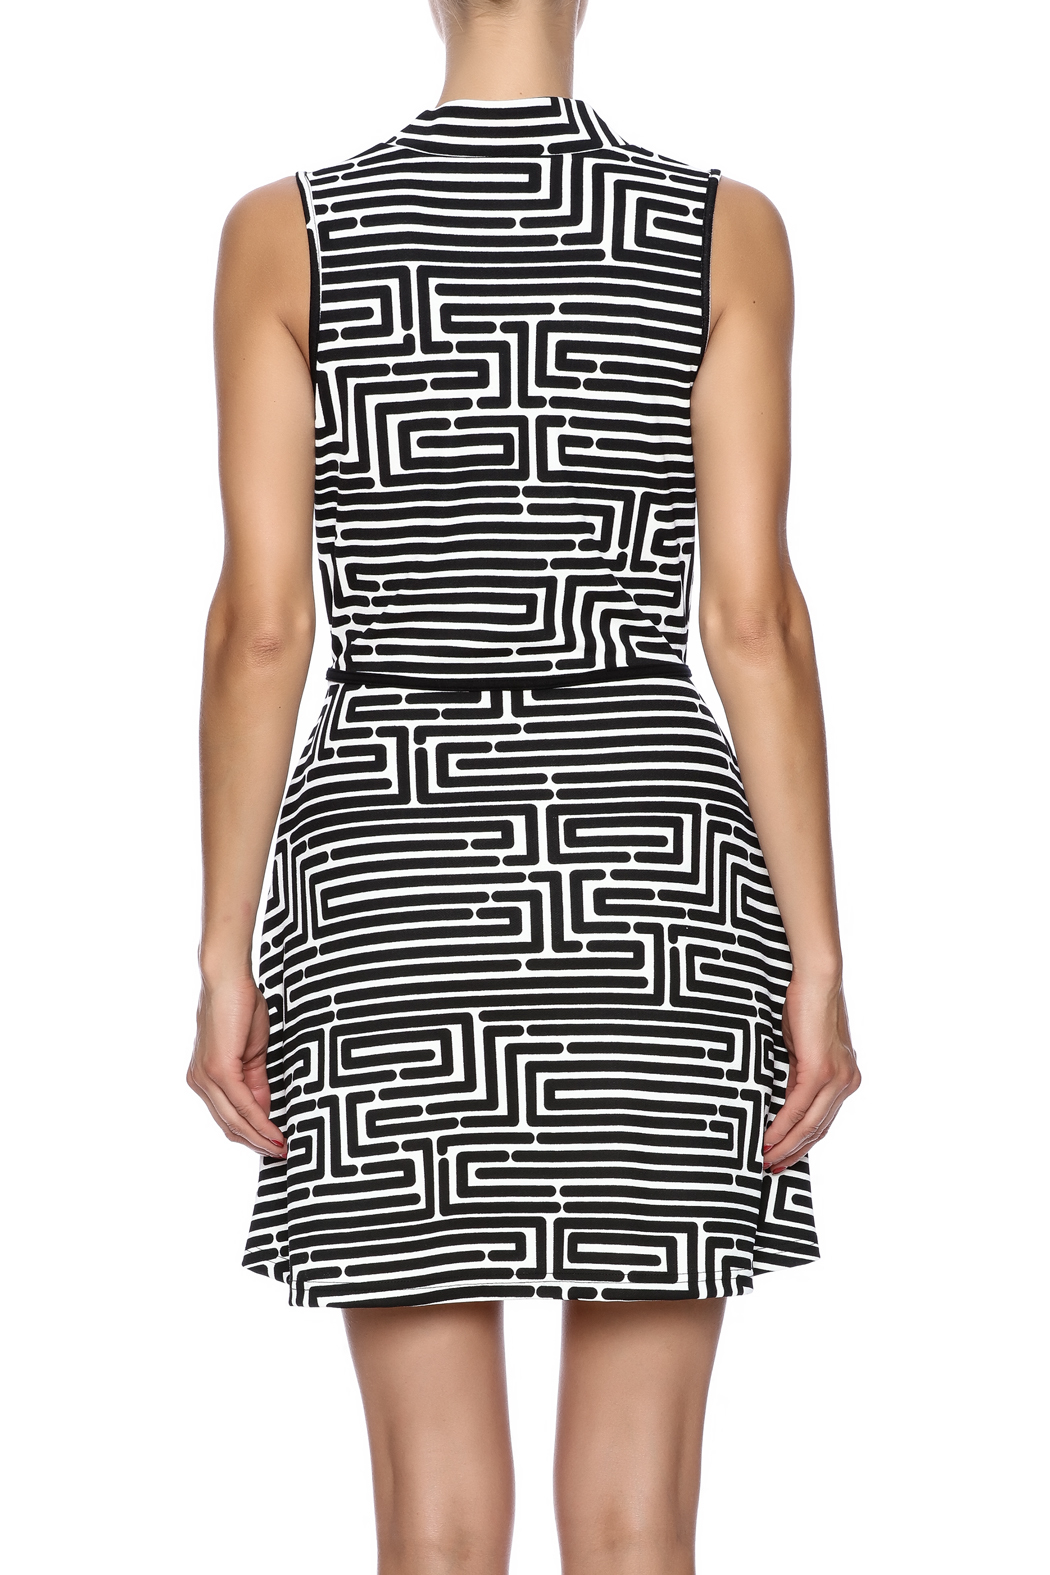 vFish designs Geometric Print Dress - Back Cropped Image